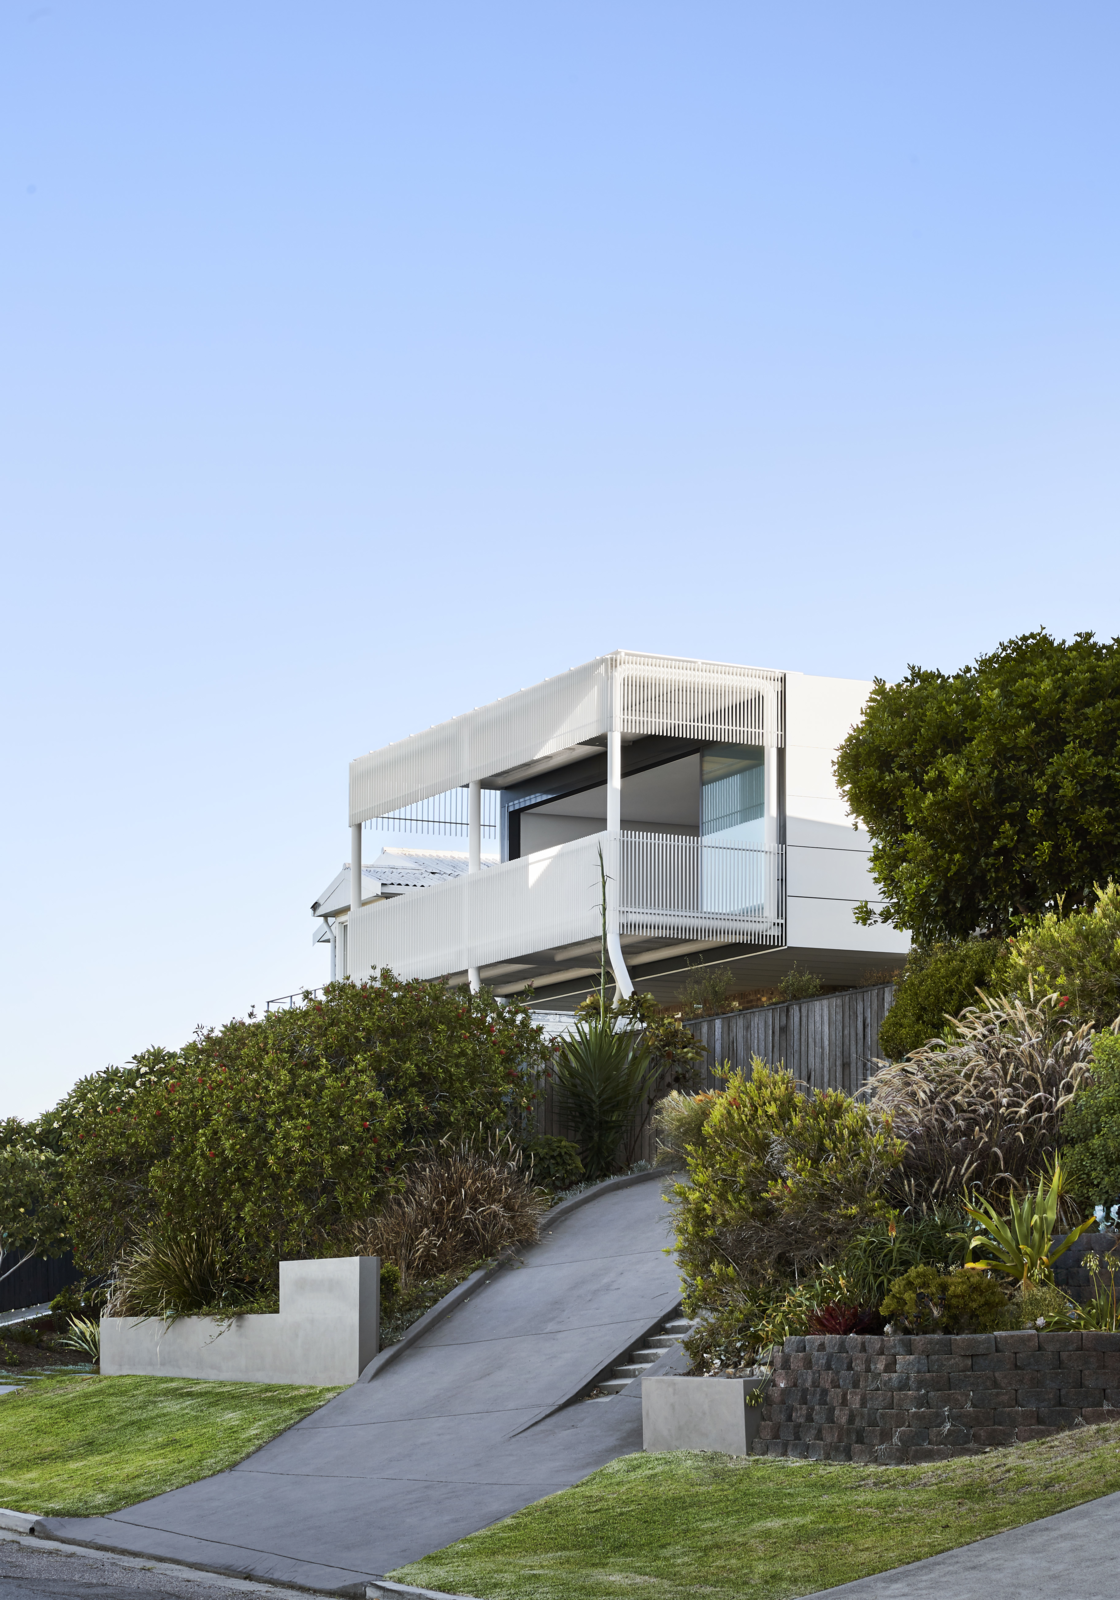 Exterior, Metal Siding Material, Flat RoofLine, House Building Type, Brick Siding Material, and Glass Siding Material Lush landscaping softens the steep driveway that leads to the garage at the base of the house.  Photos from A Futuristic Abode in Australia Draws Inspiration From Star Wars